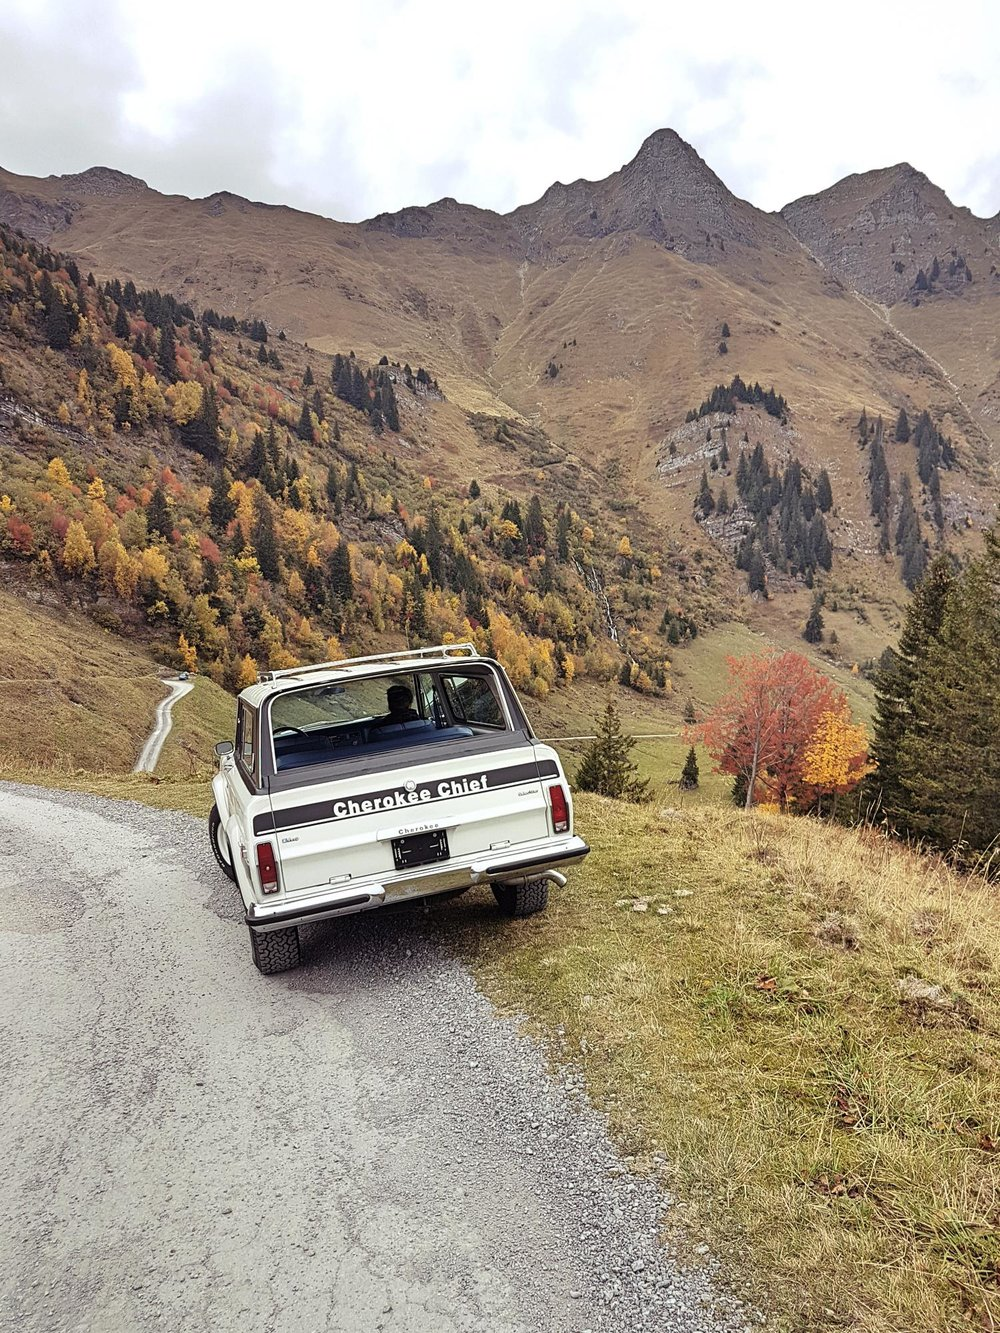 jeep-cherokee-chief-1978-shooting-morgins-switzerland-83.jpg